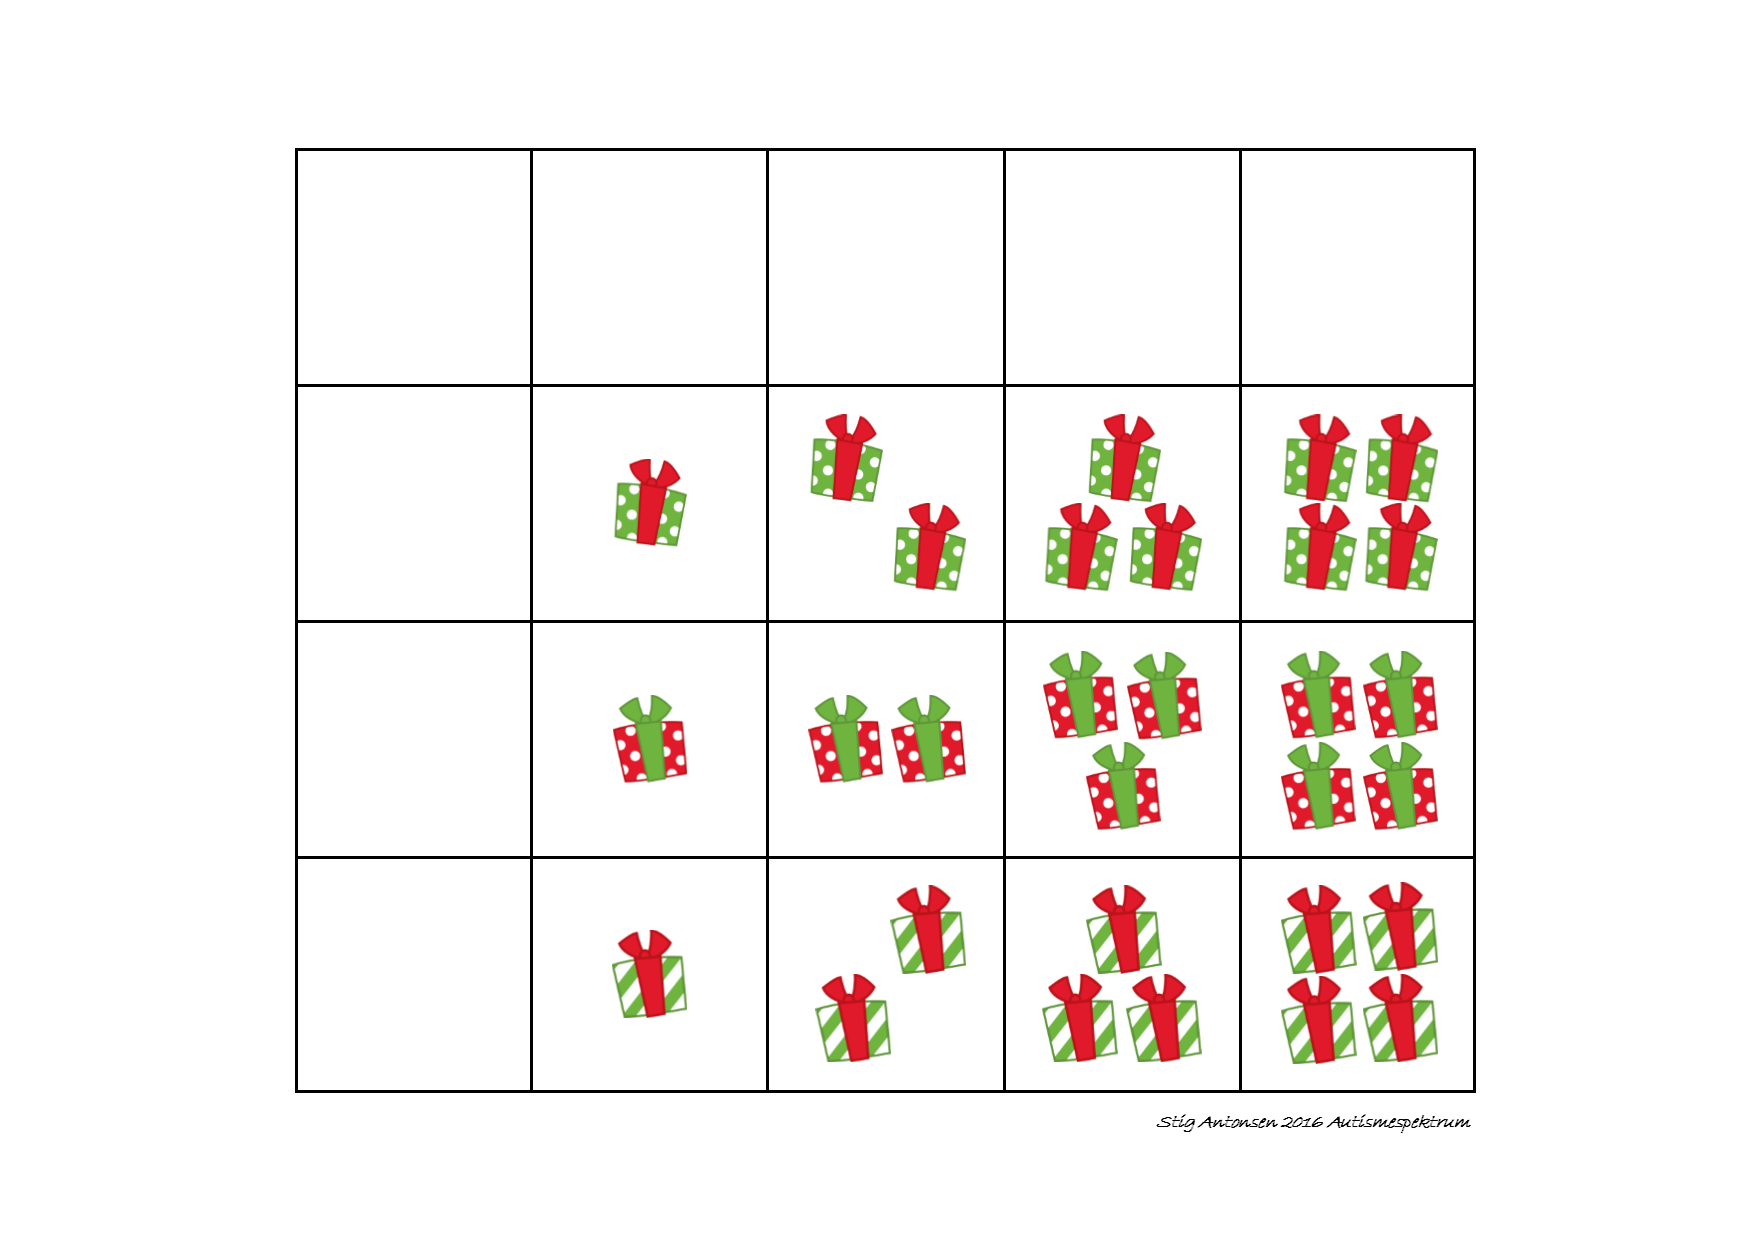 Tiles For The Matrix Counting Game Find The Belonging